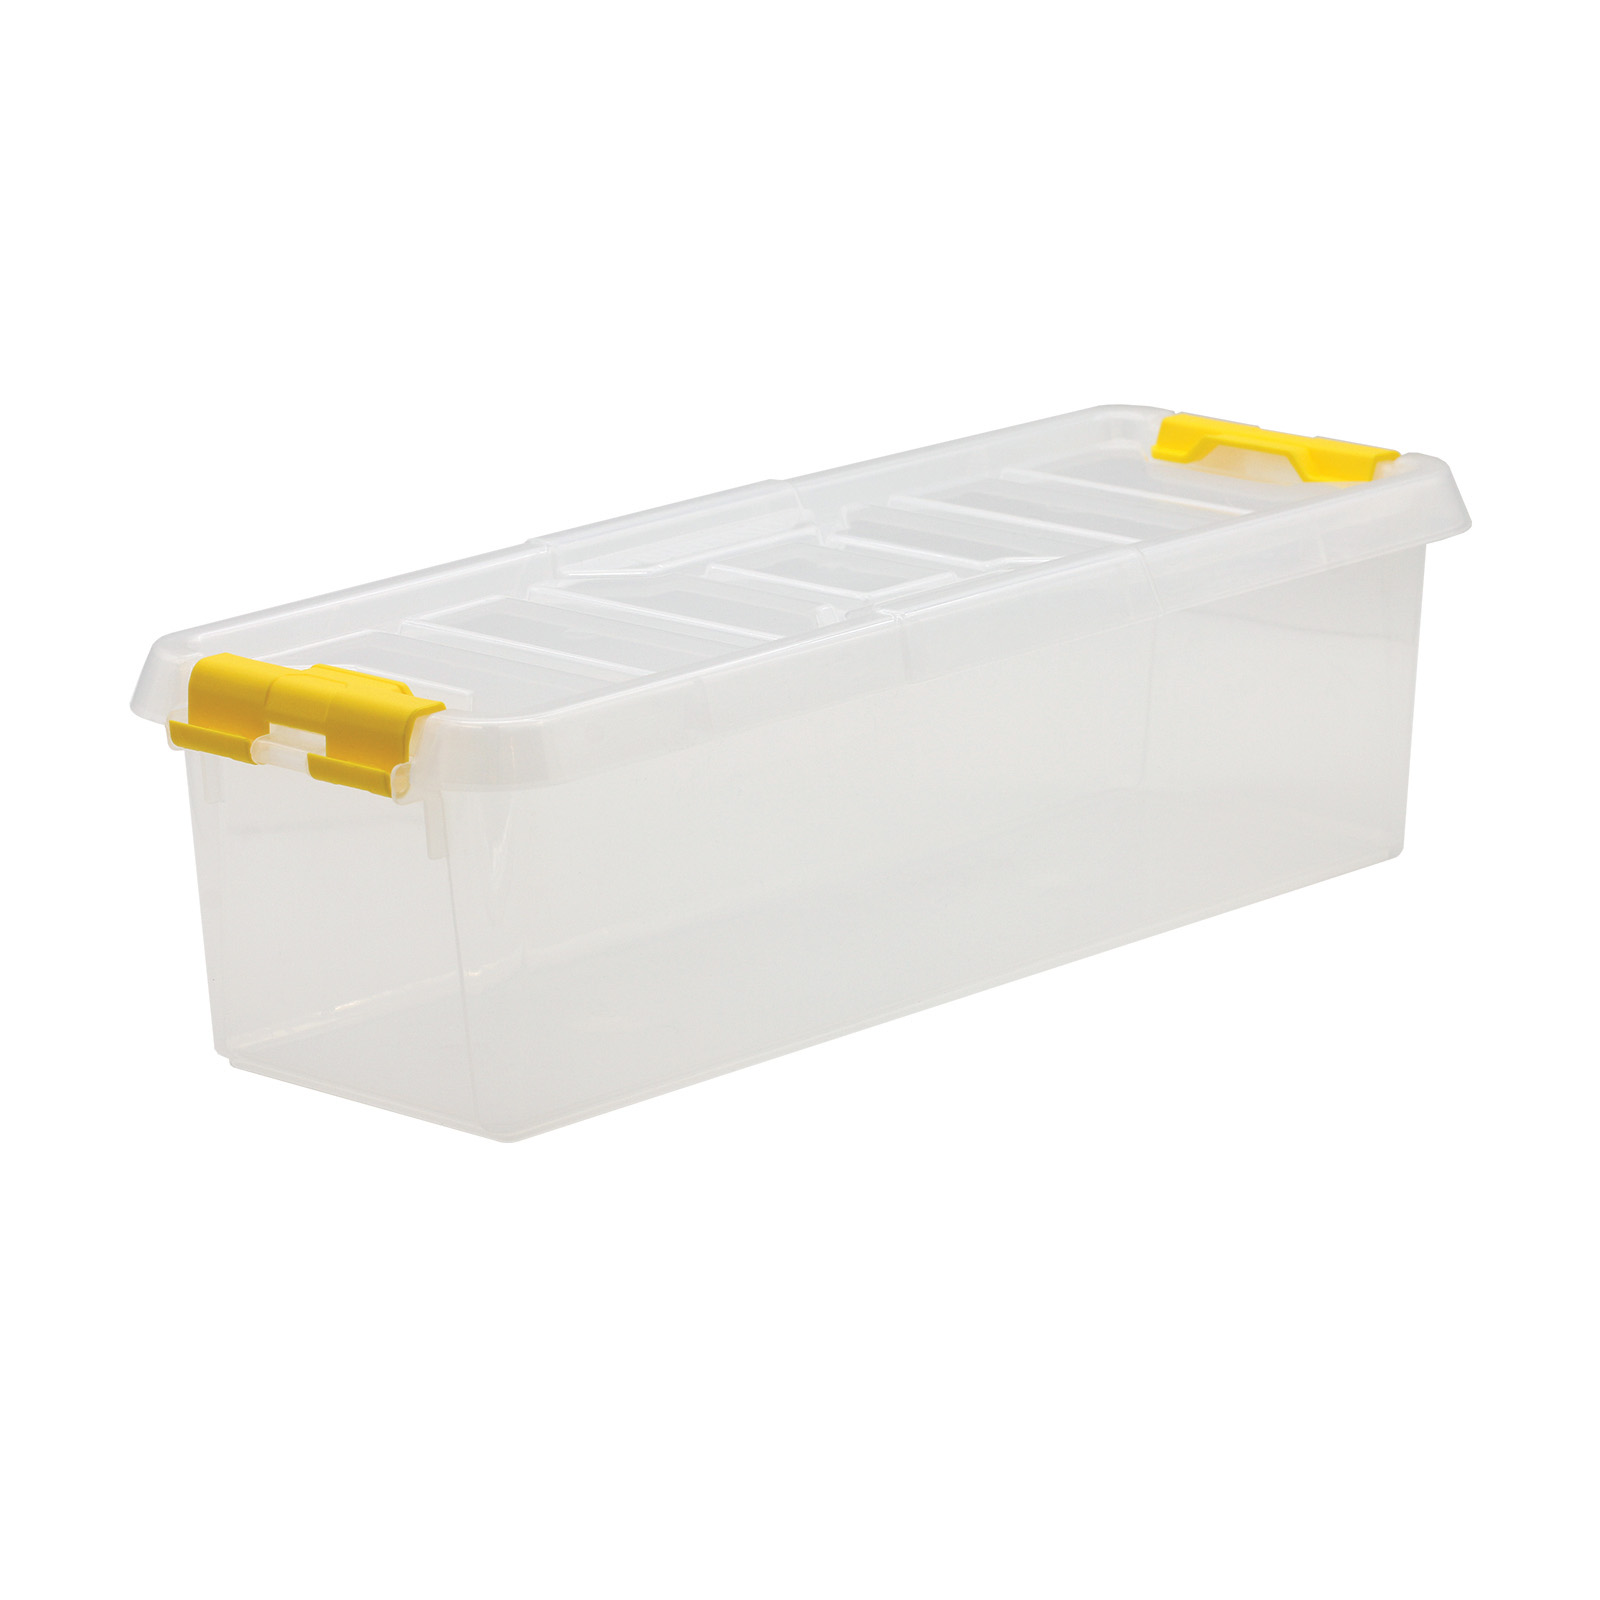 UNi-PRO 3.5lt Plastic Storage Container with lid